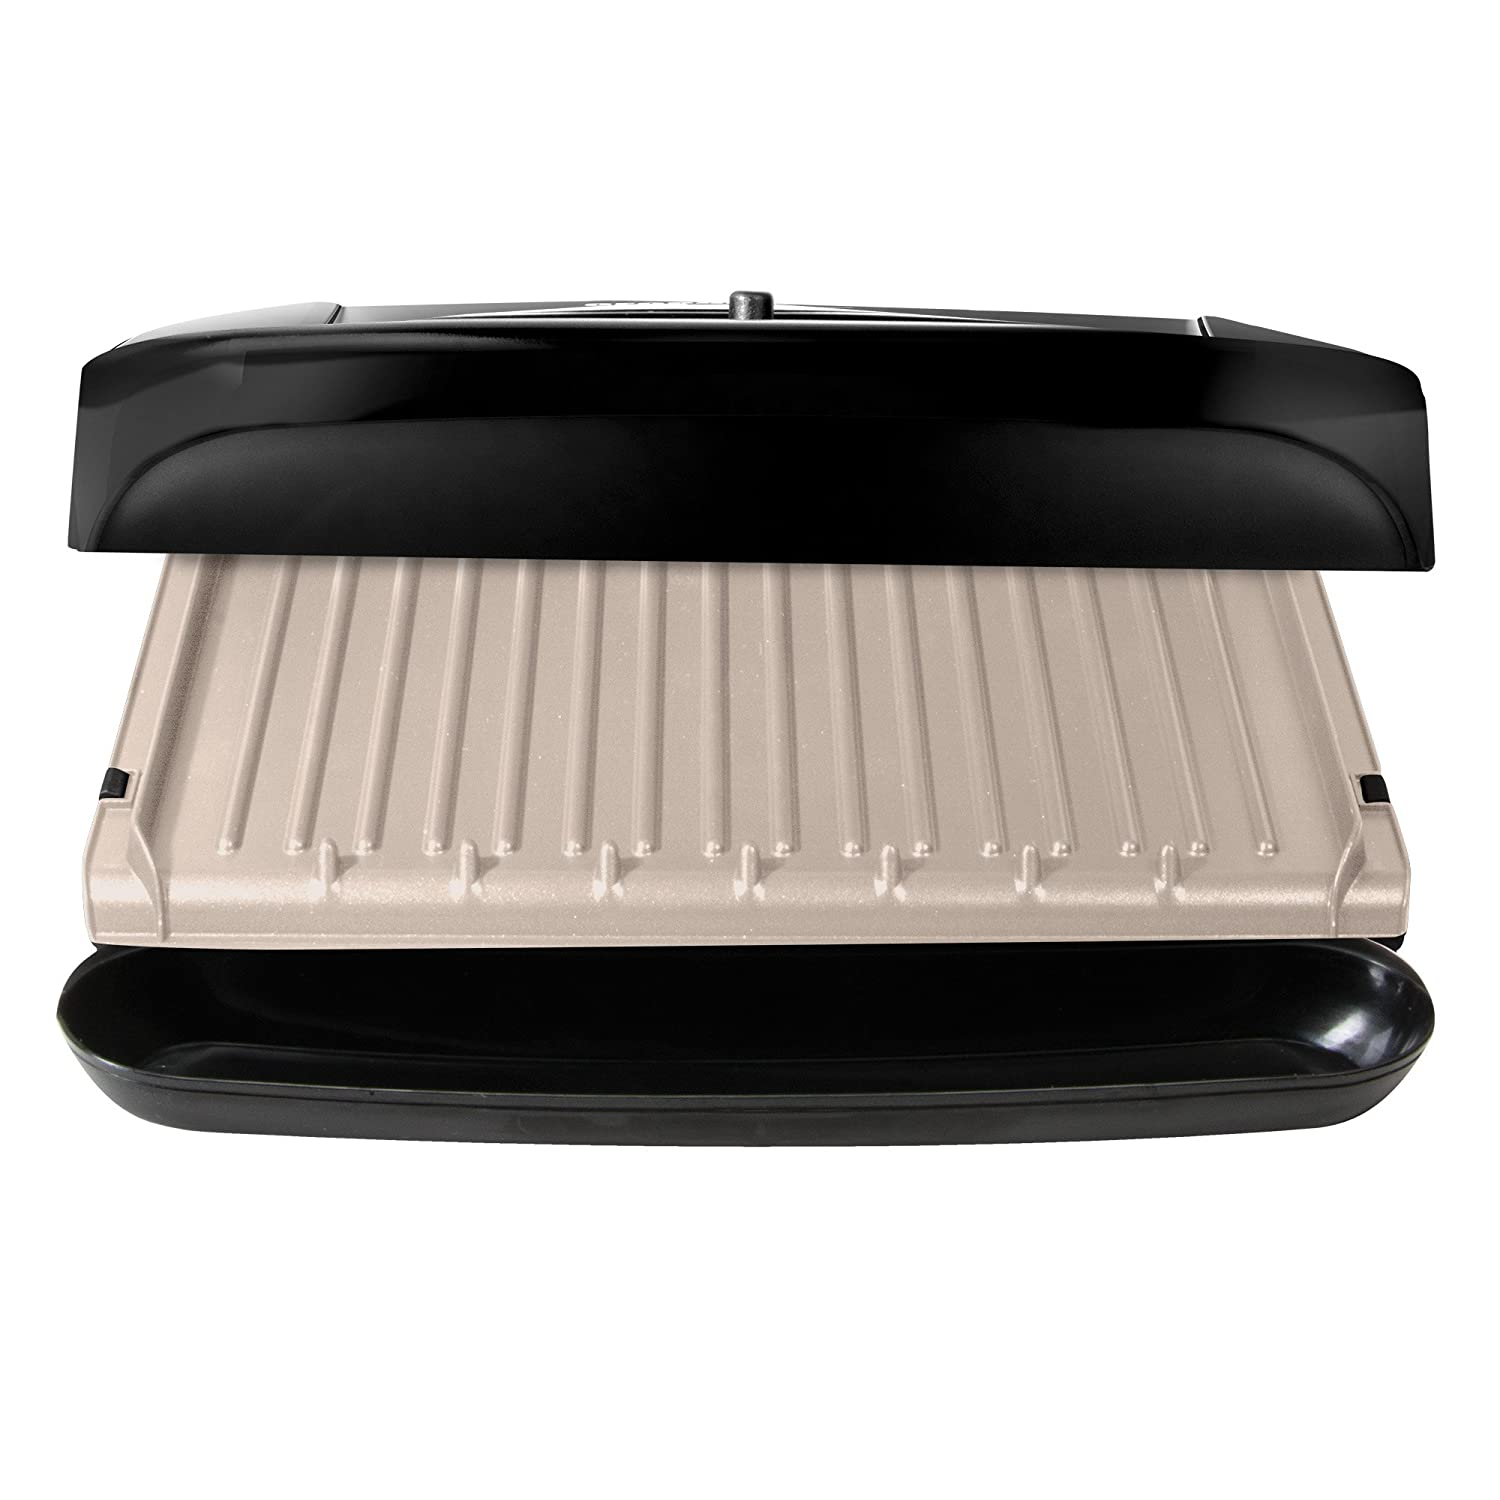 GRP1001BPC 6 Servings Black George Foreman Grill and Panini Press ...